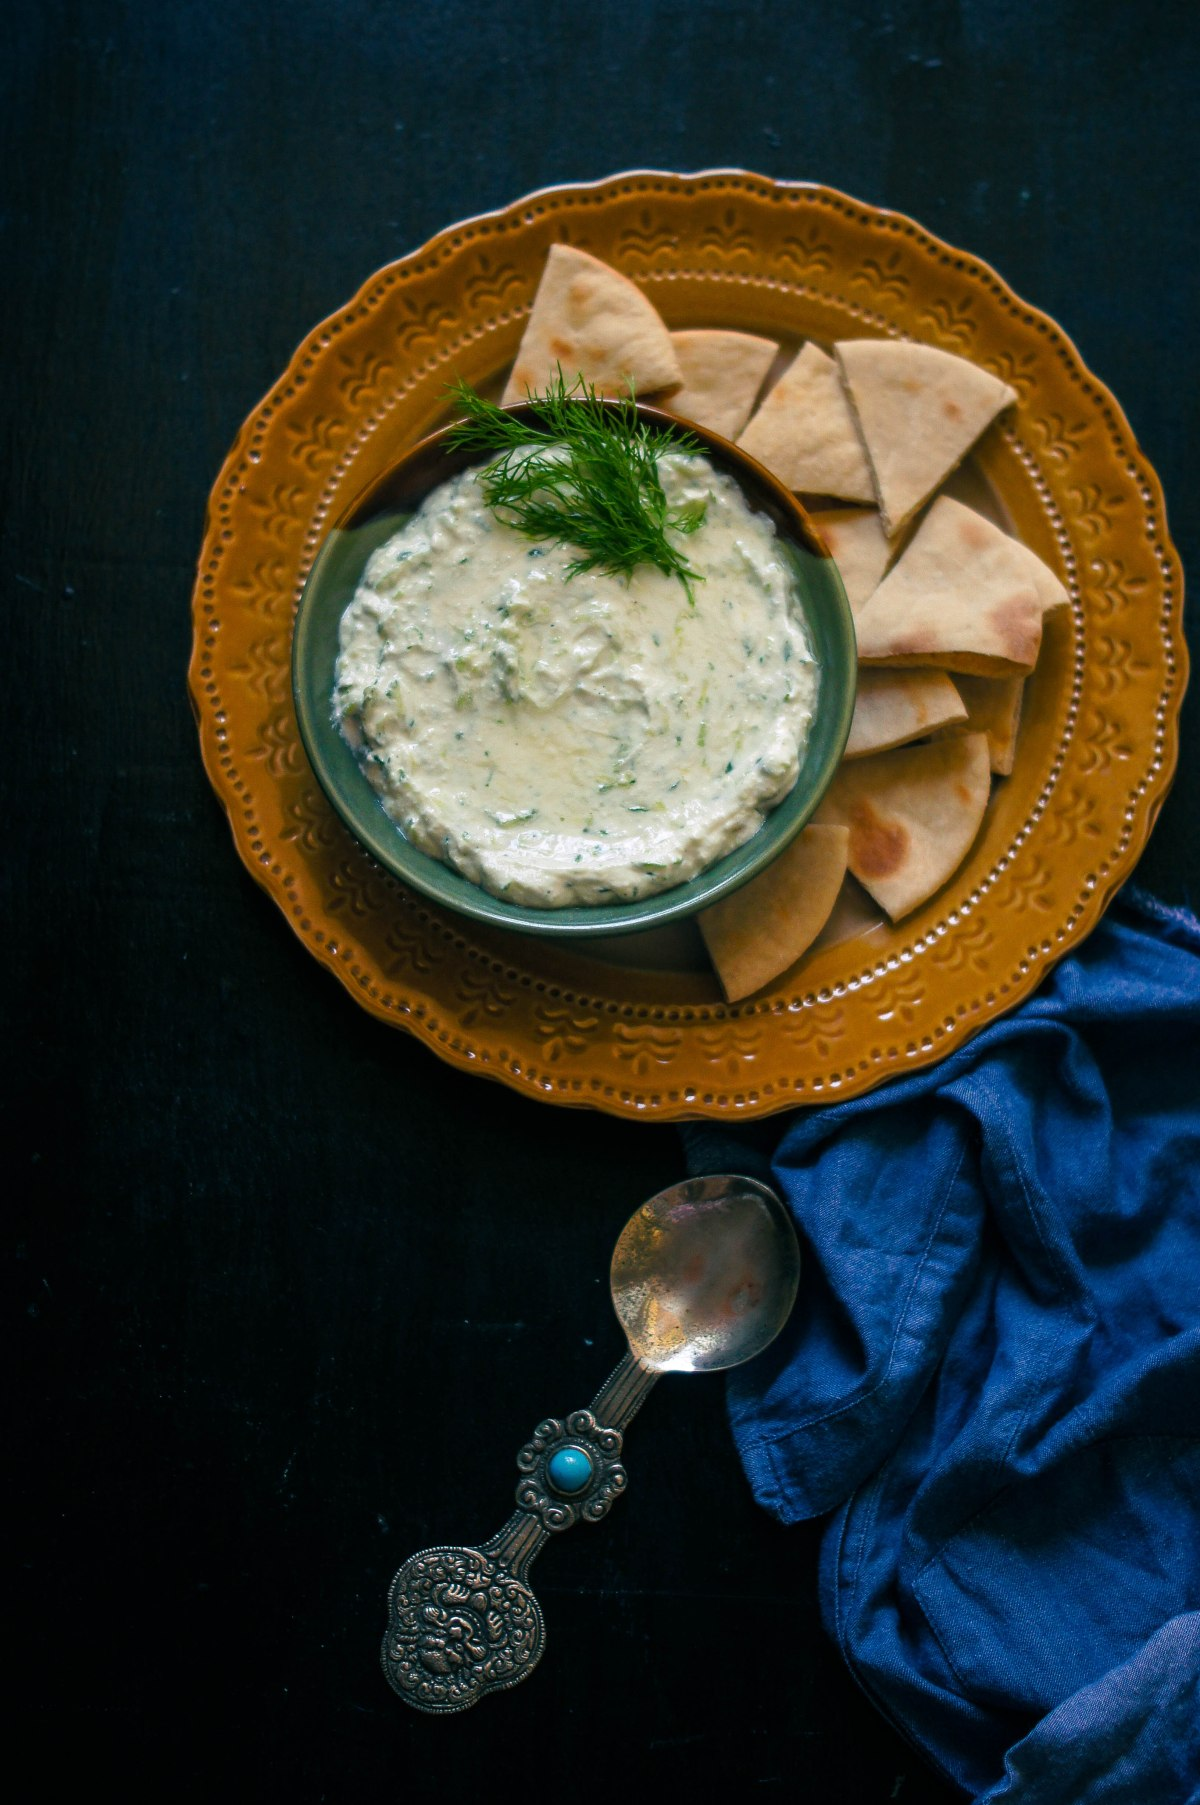 Tzatziki – Fresh dill leaves in a flavoured yogurt dip